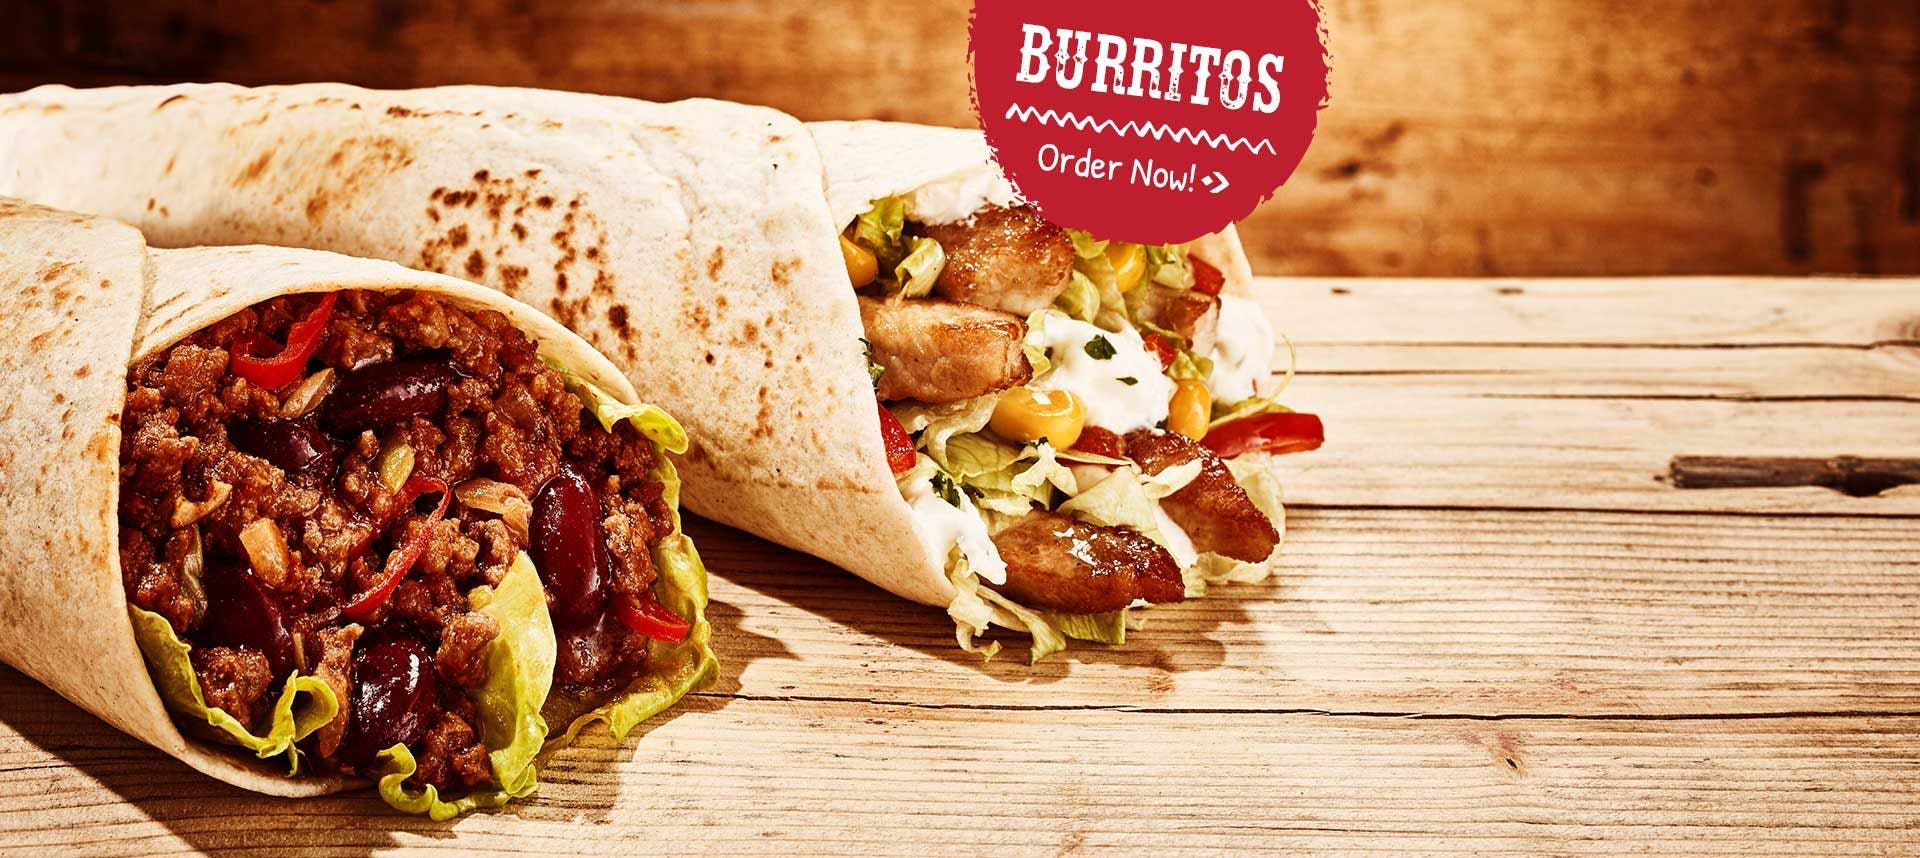 Order Burritos from Cactus Mexican